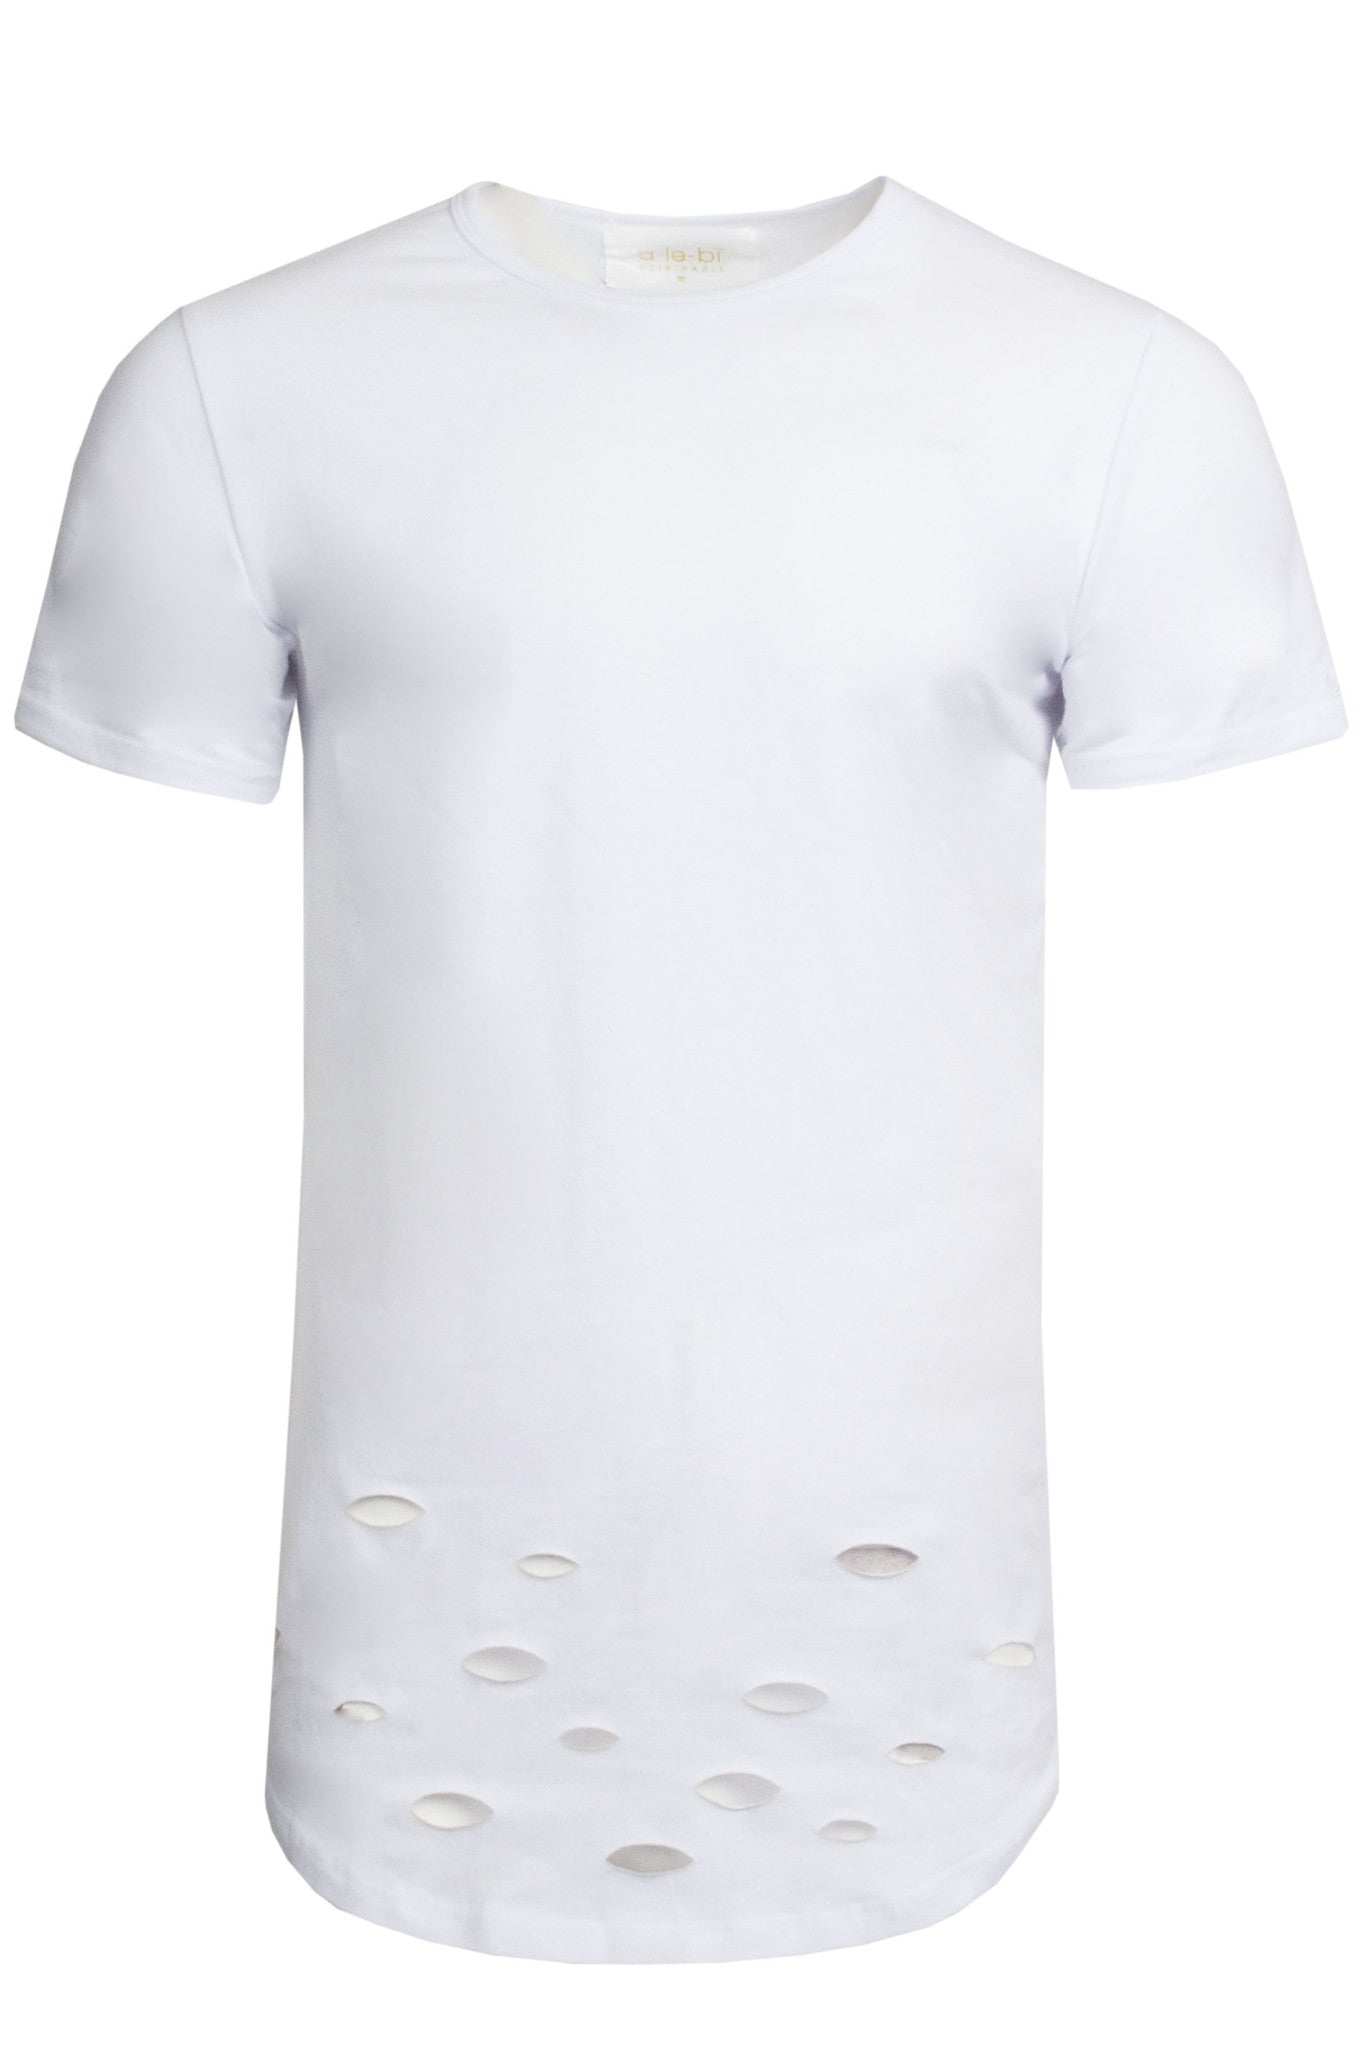 Distressed White Tee